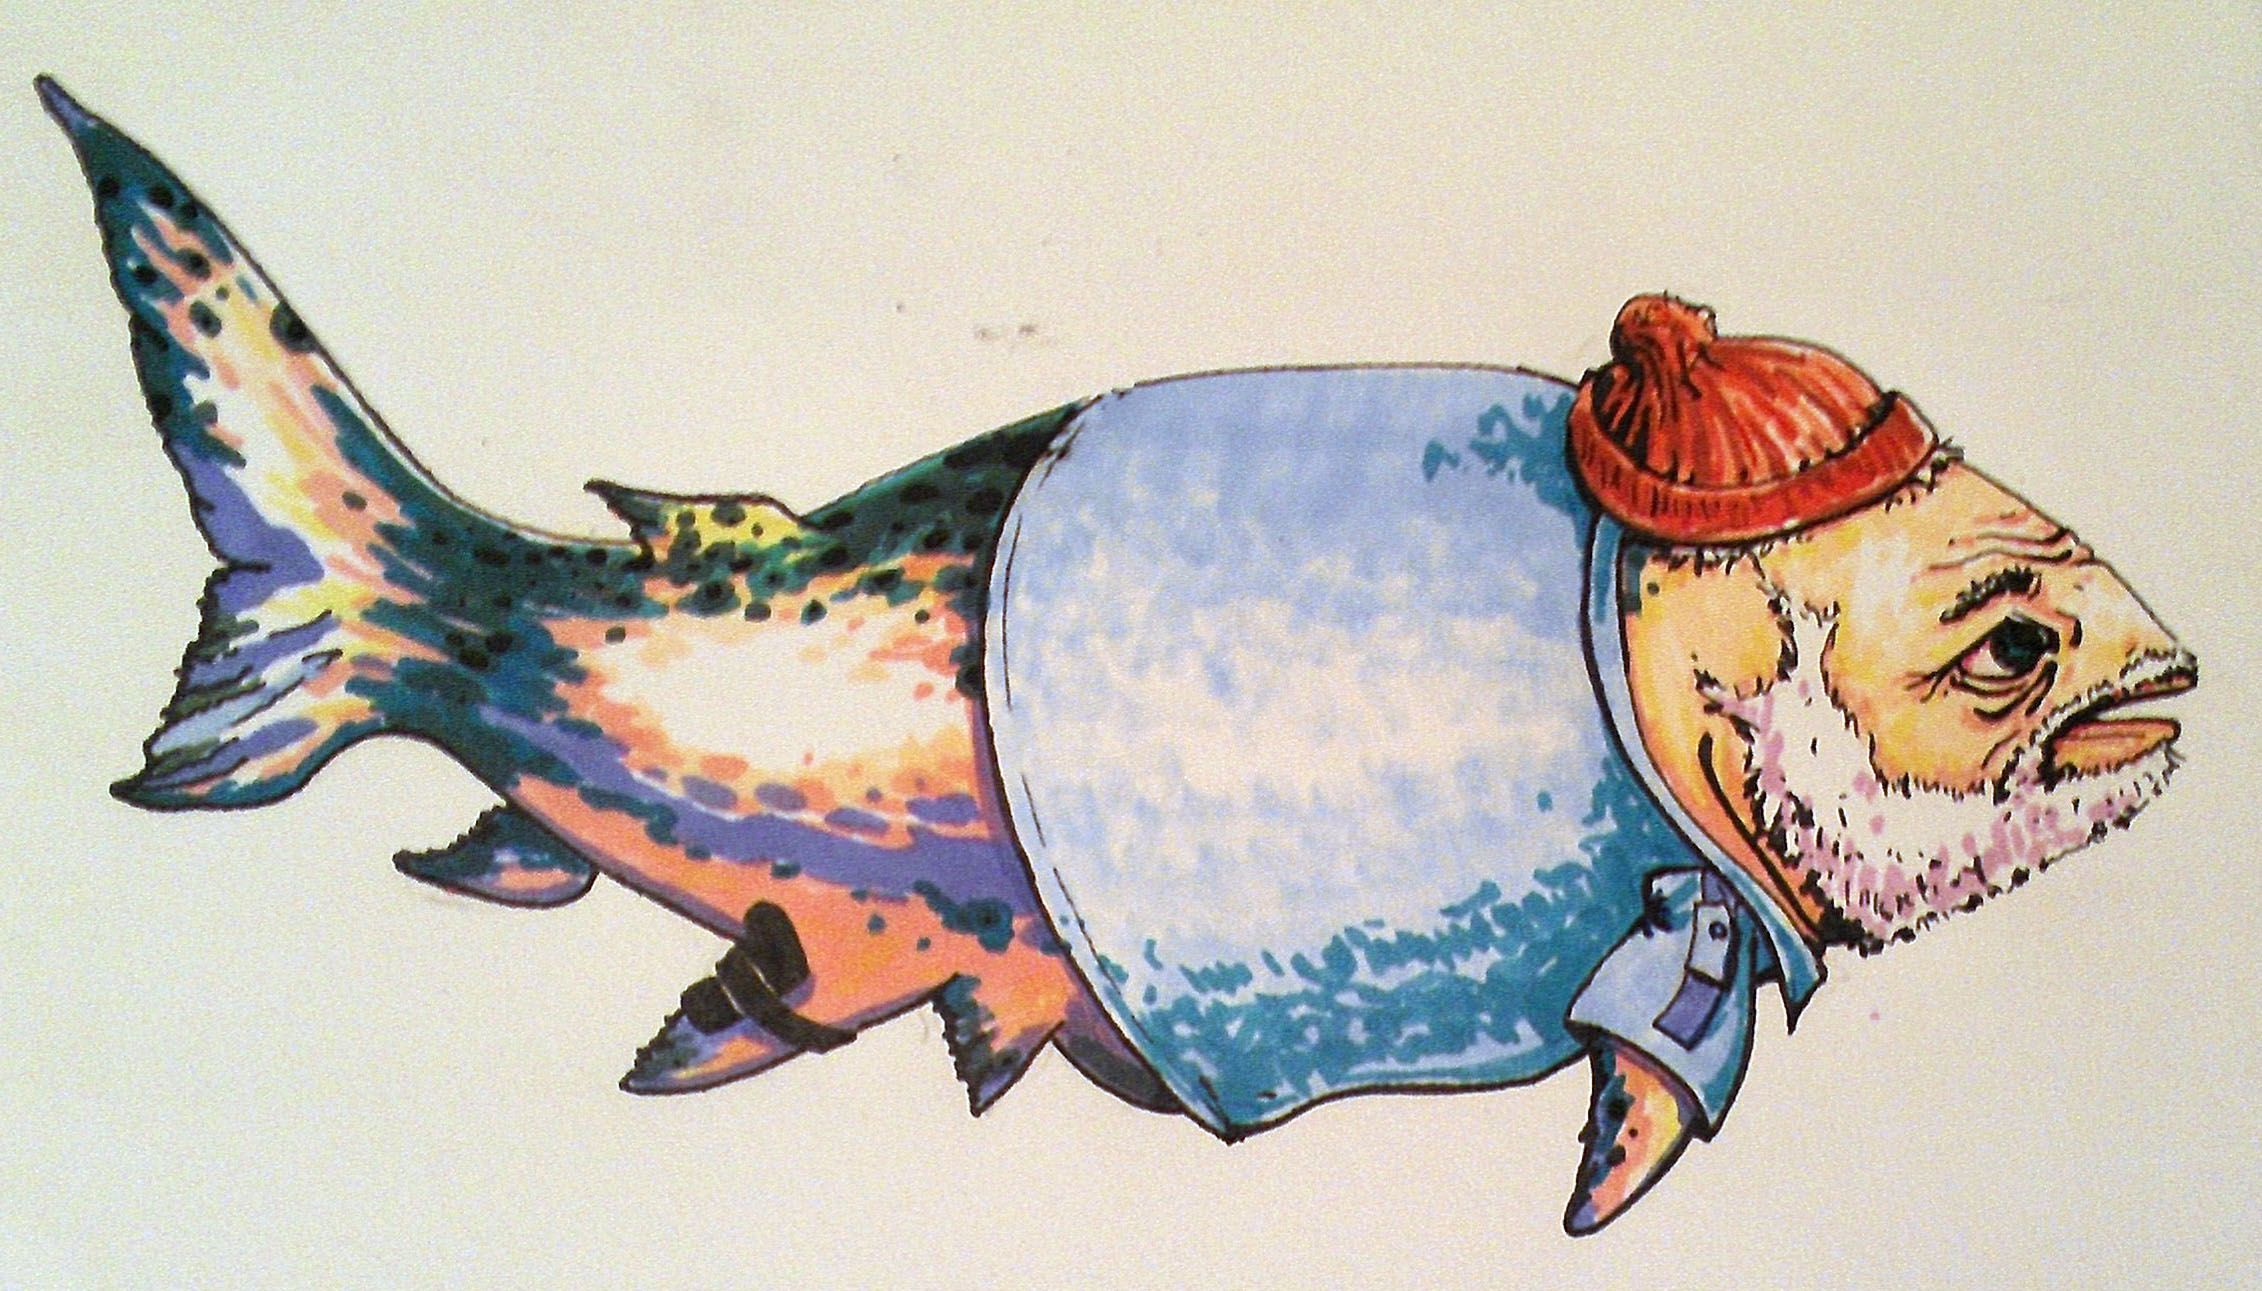 Fish with beard concept for collaborative mural in downtown Laramie, WY.